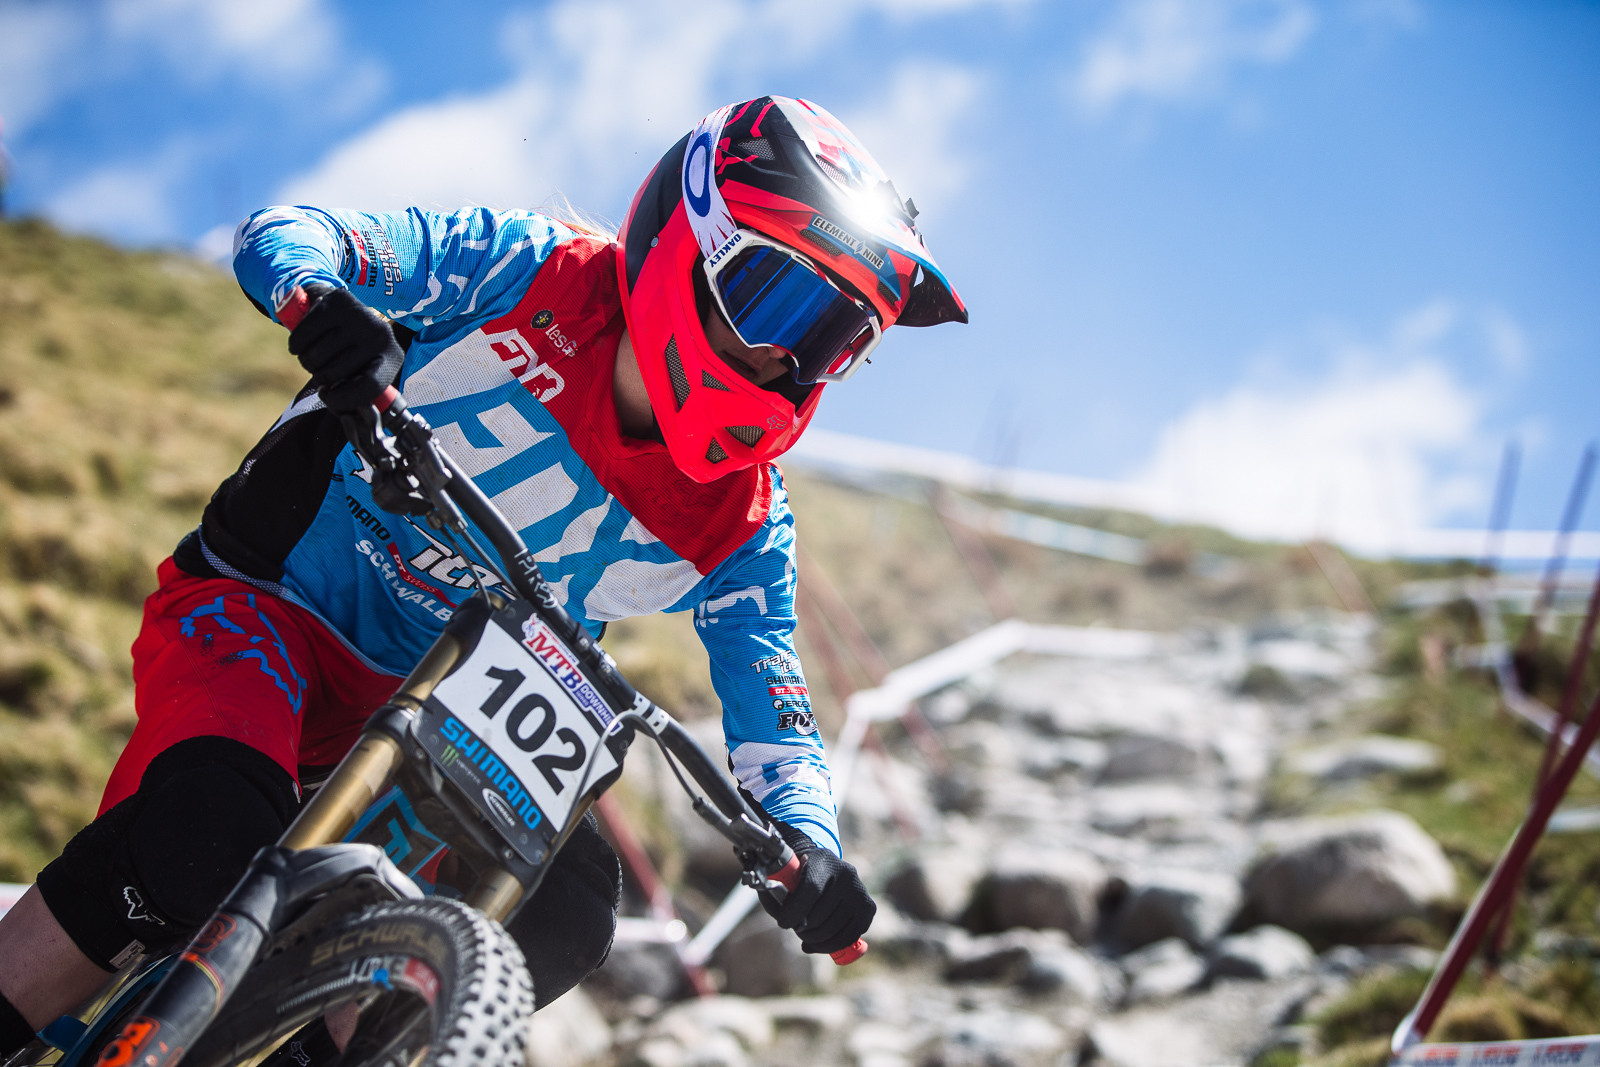 Tahnee Seagrave, Fort William BDS - Fort William DH Action from the British Downhill Series - Mountain Biking Pictures - Vital MTB